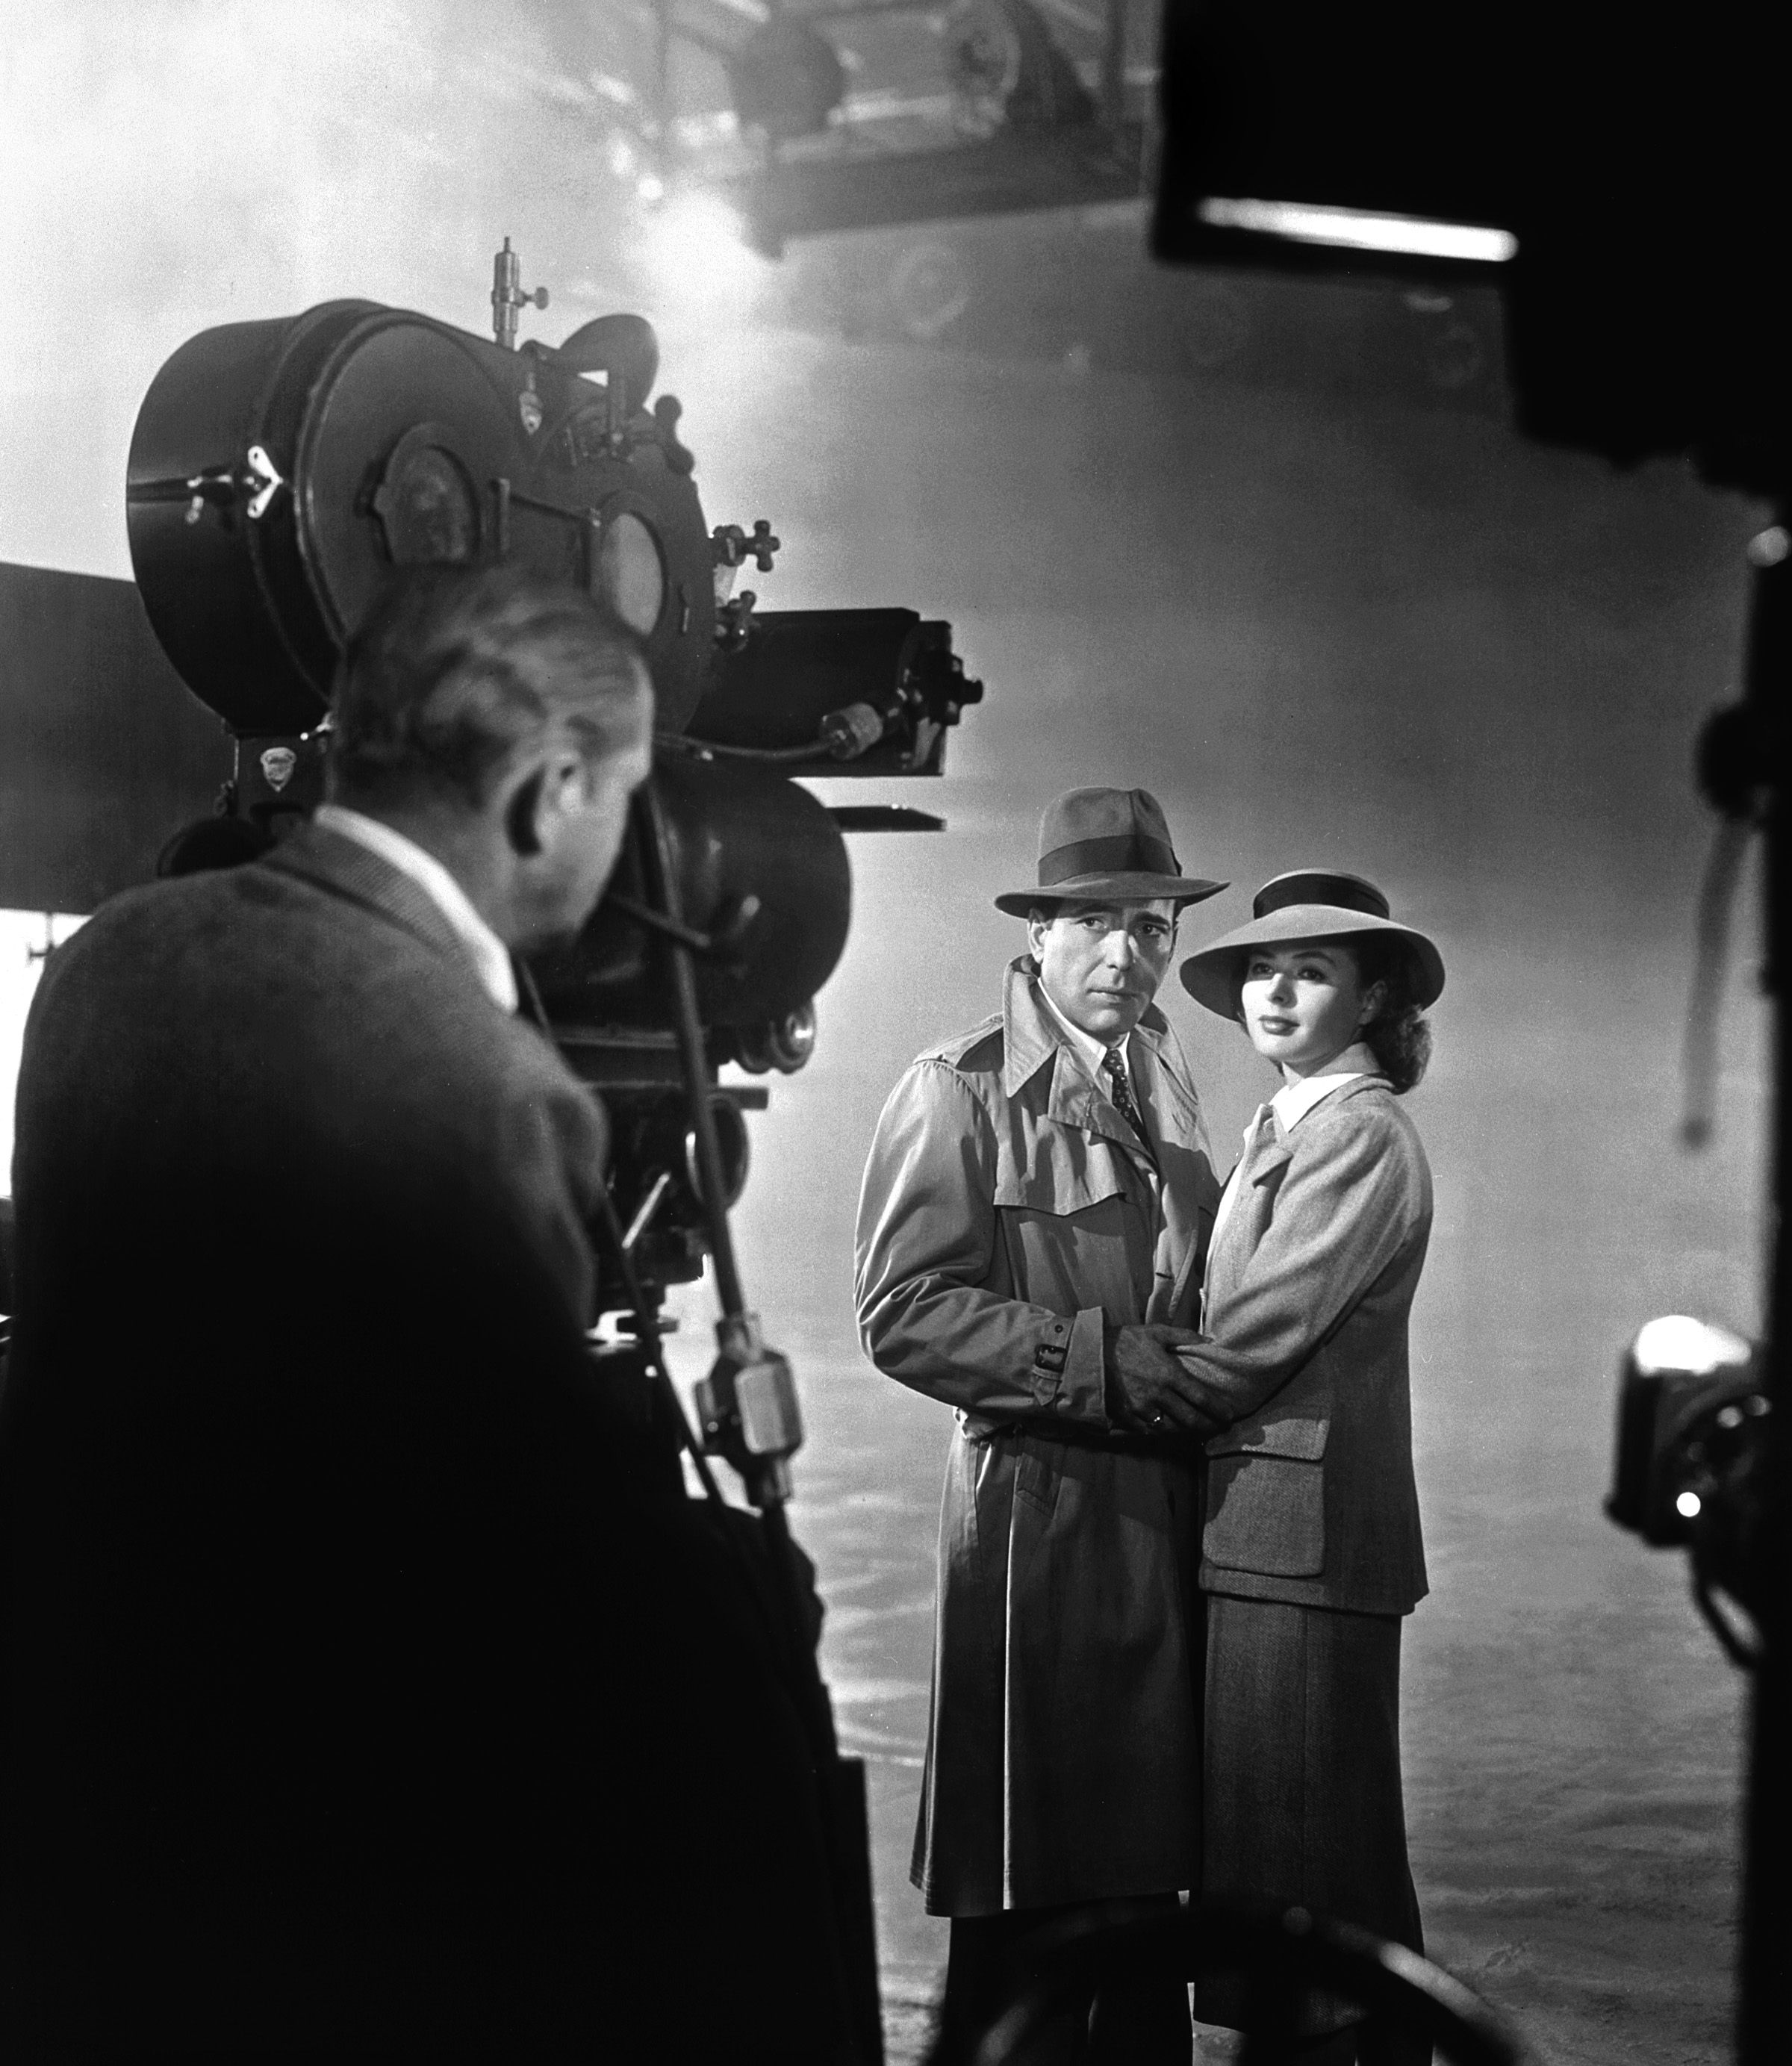 photo tournage coulisse cinema Casablanca 37 Photos sur des tournages de films #2  photo featured cinema 2 bonus